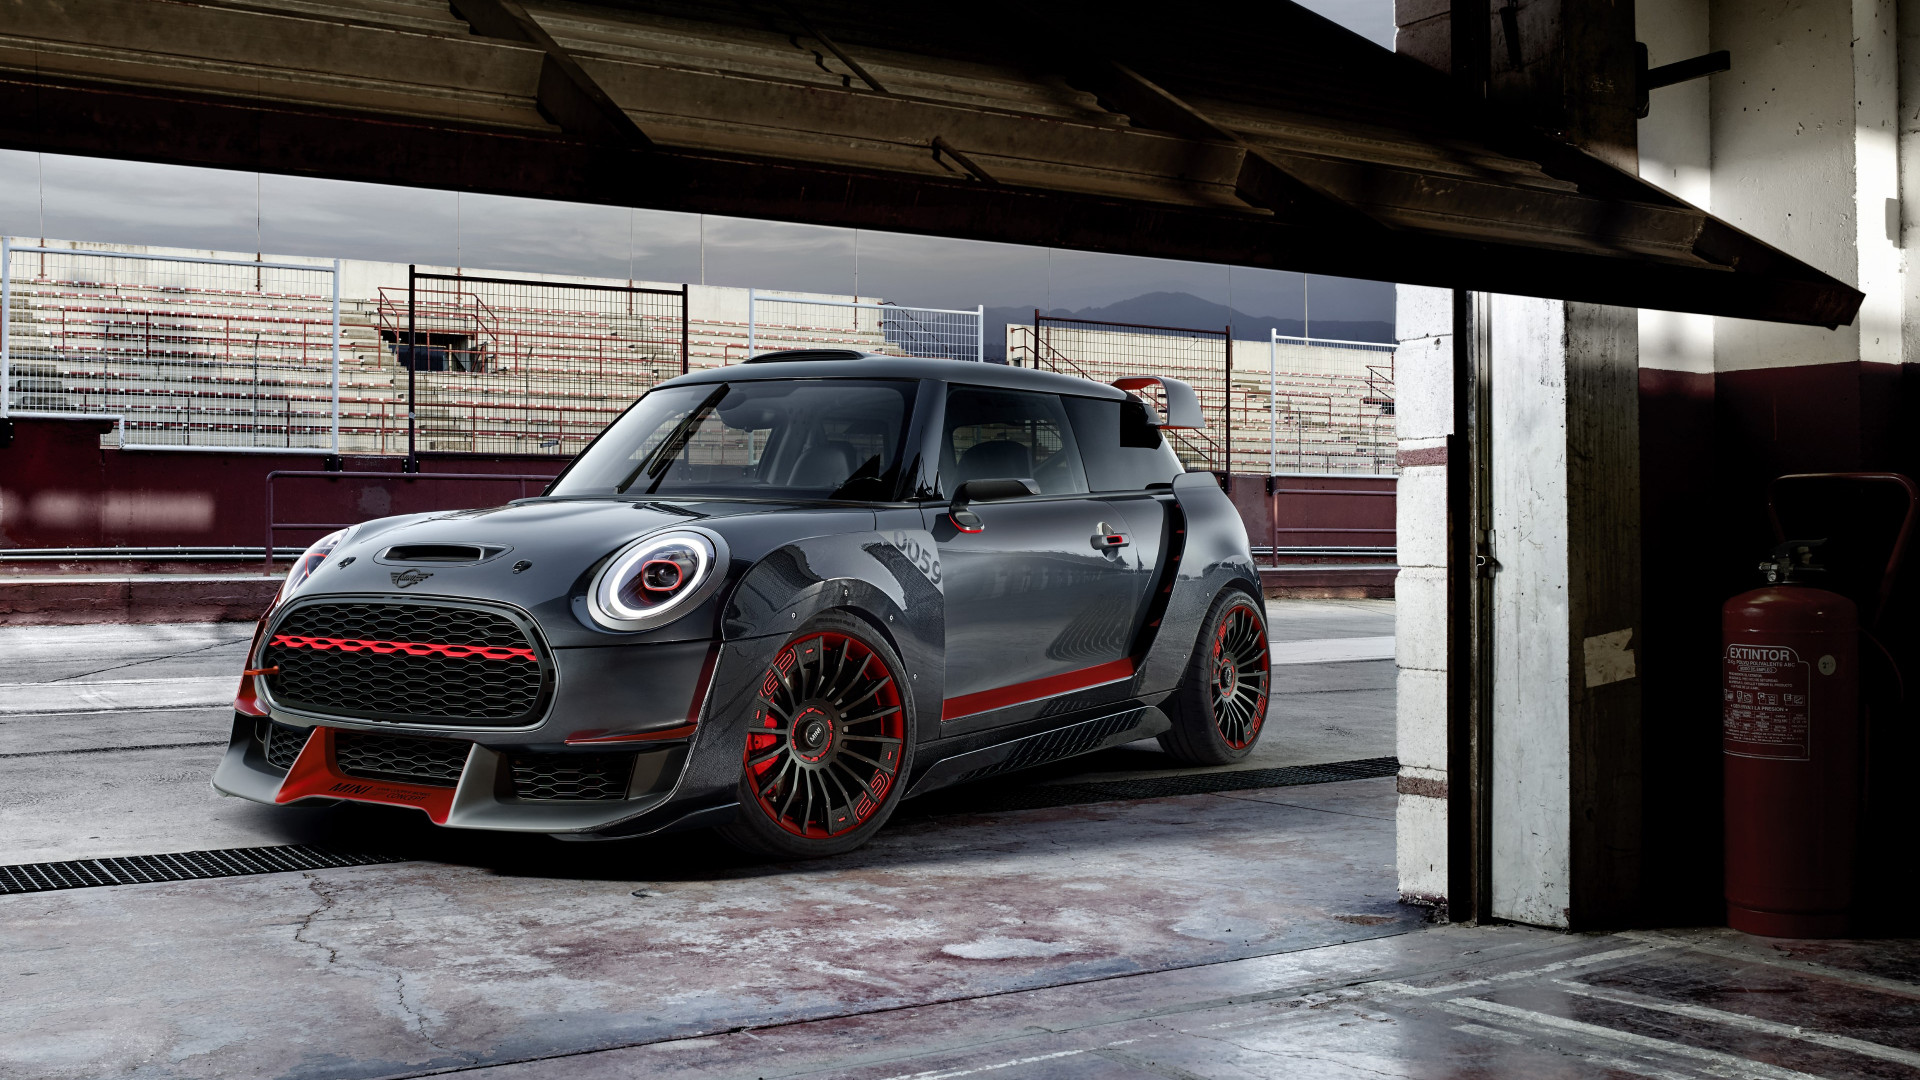 MINI John Cooper Works wallpaper 1920x1080